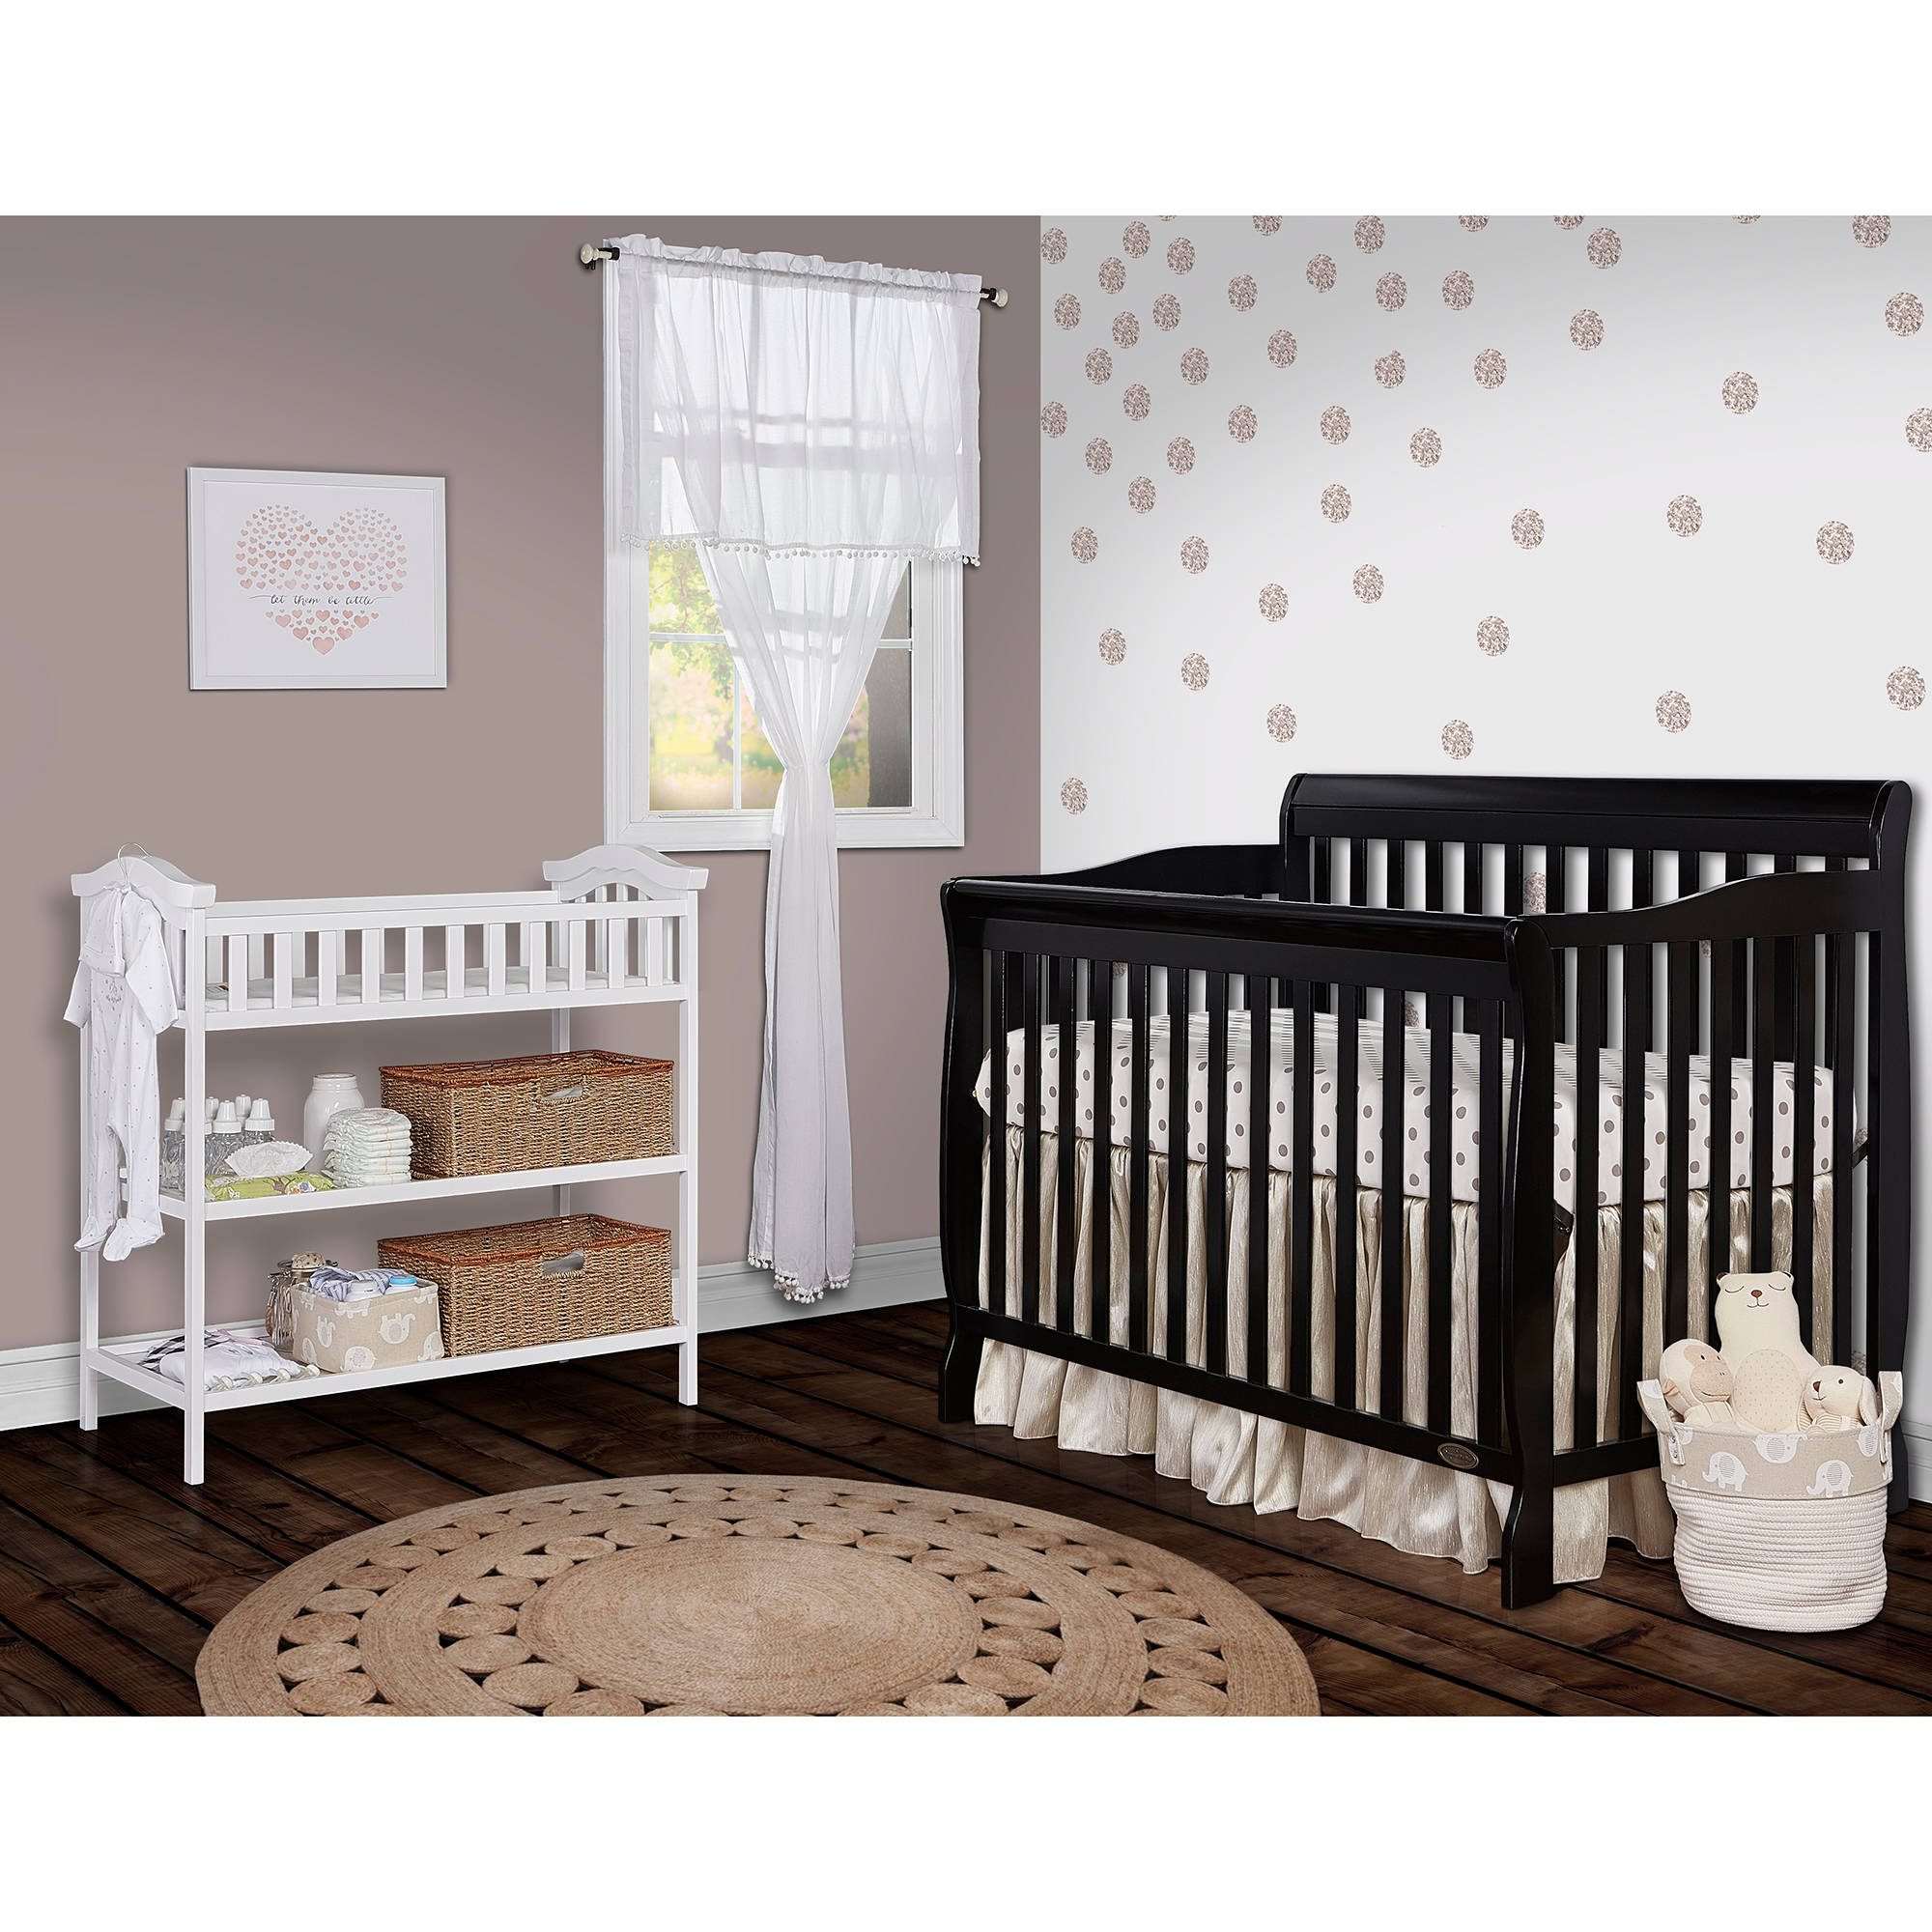 Dream On Me Ashton Convertible 5-in-1 Crib, Black